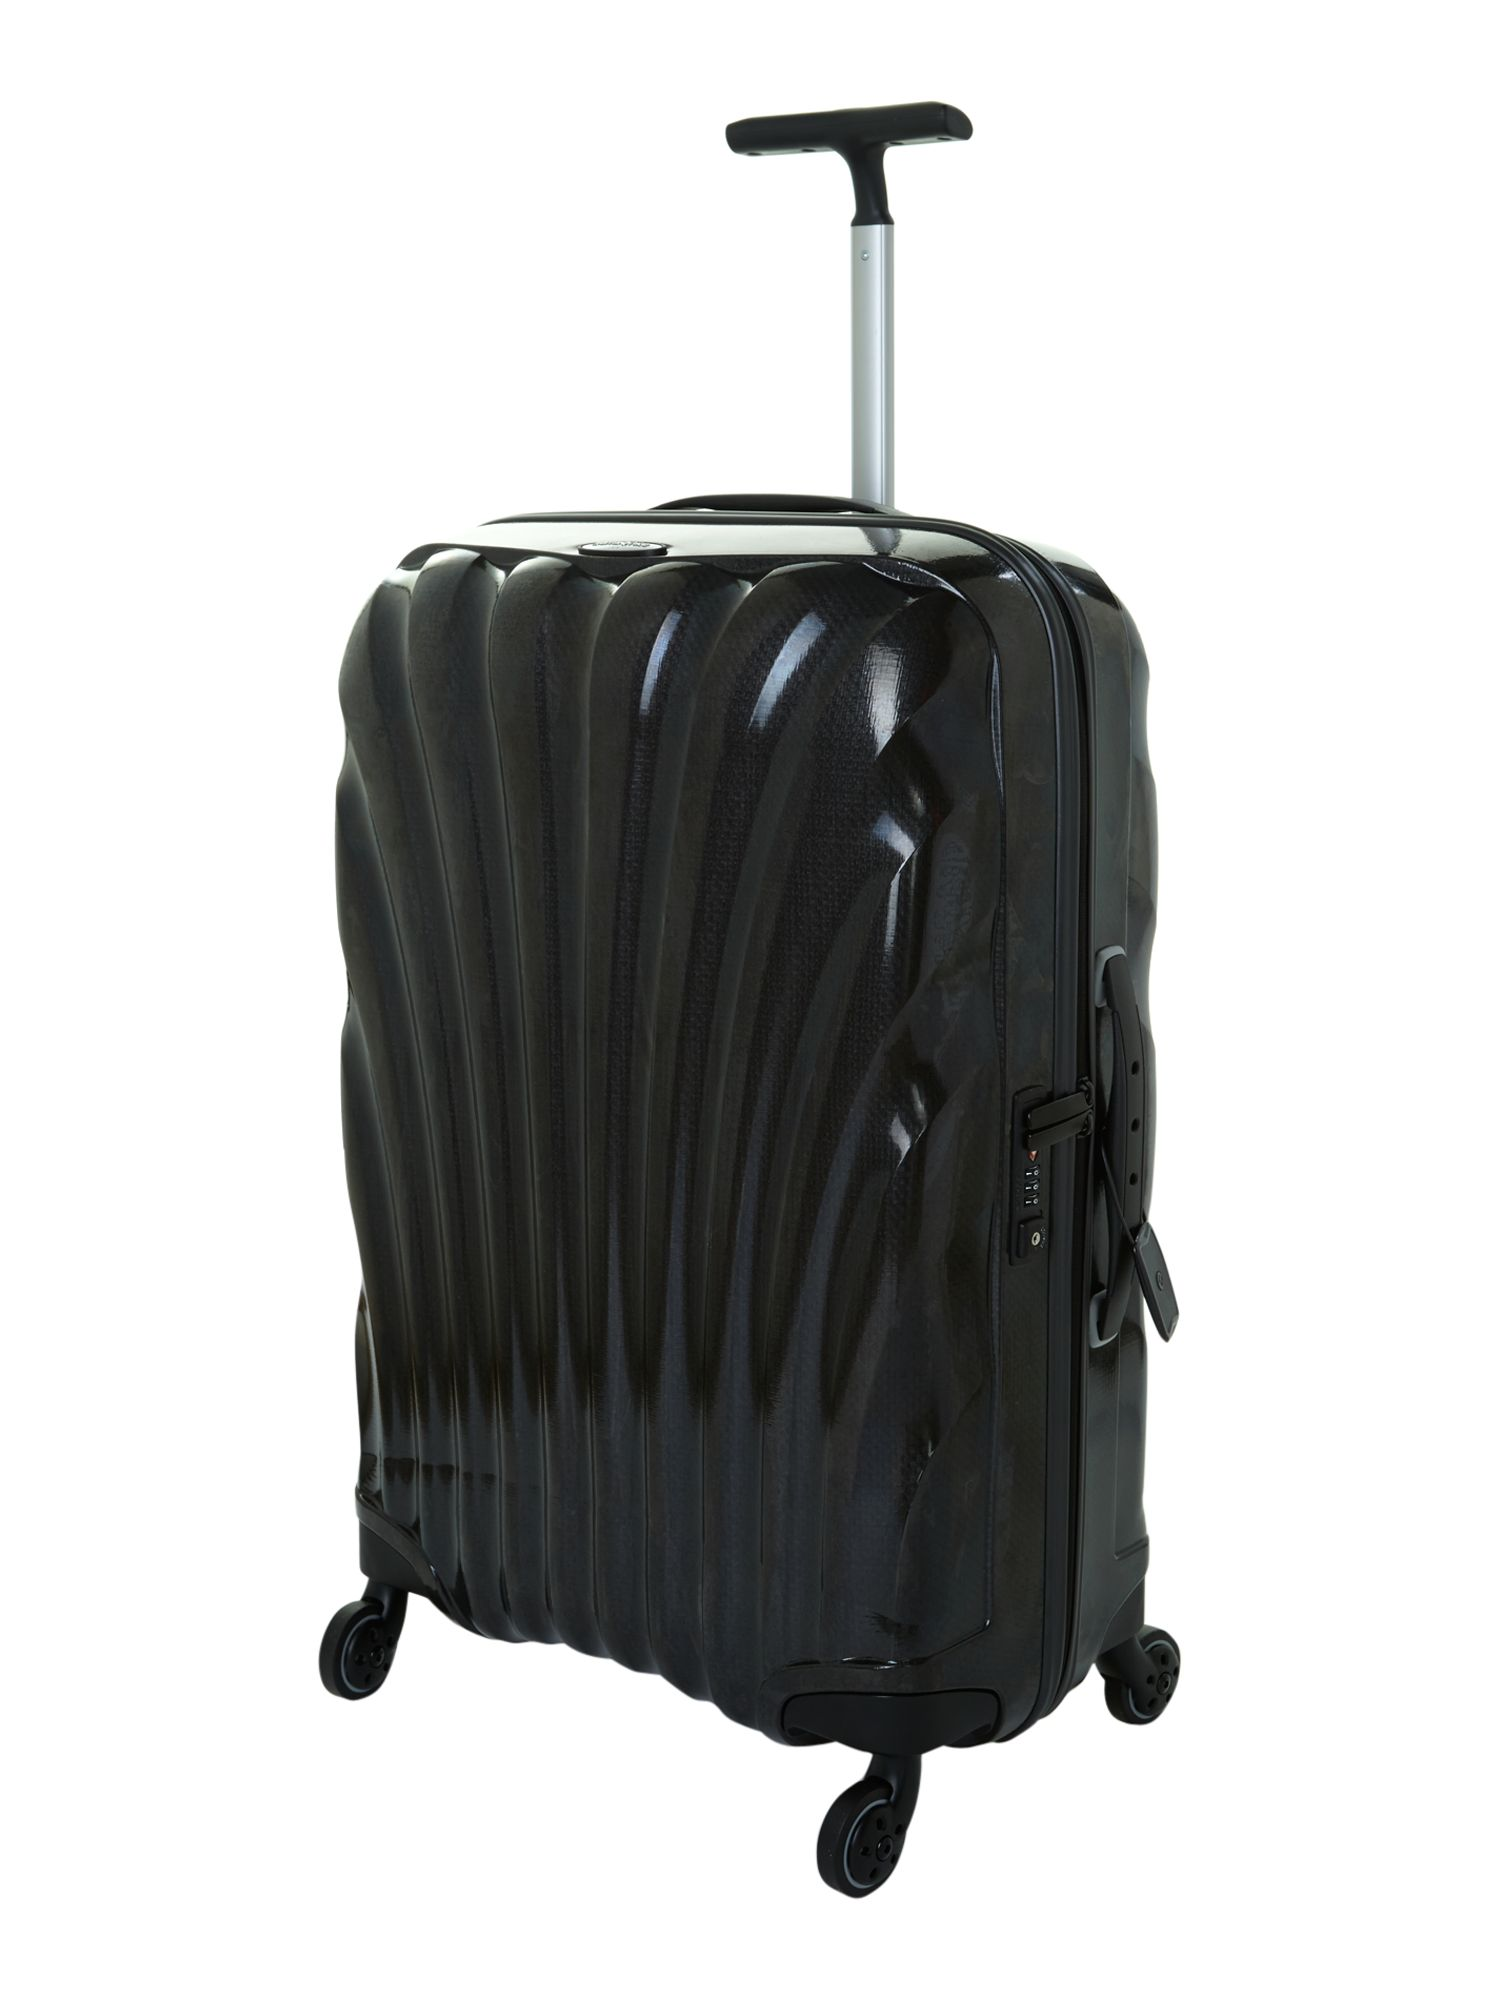 New cosmolite 4-wheel black medium suitcase